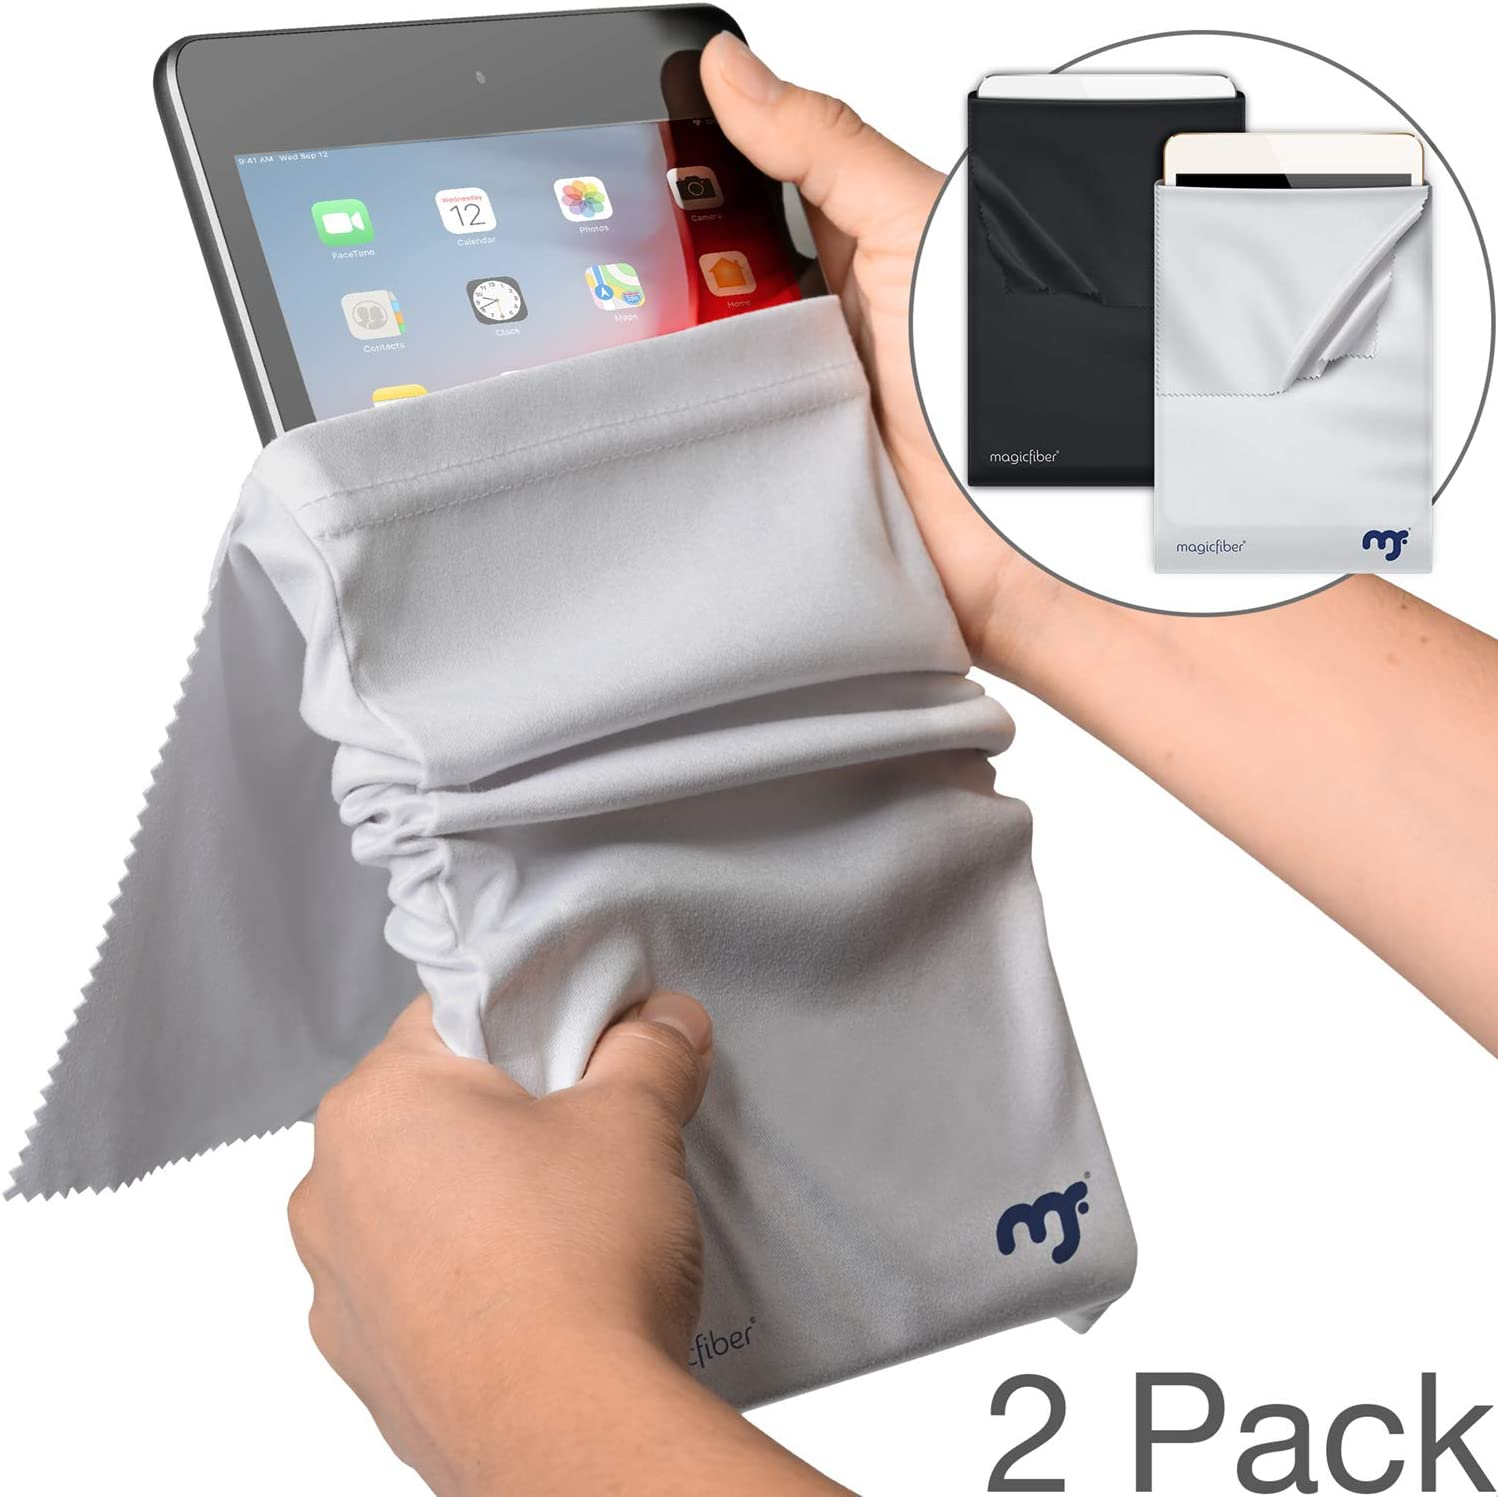 MagicFiber Microfiber iPad Sleeve Case (2 Pack) Light Protection and Screen Cleaning for iPad 9.7, 10.5, Pro, New iPad Air - Compatible with 9.7-11 Inch iPad Tablets